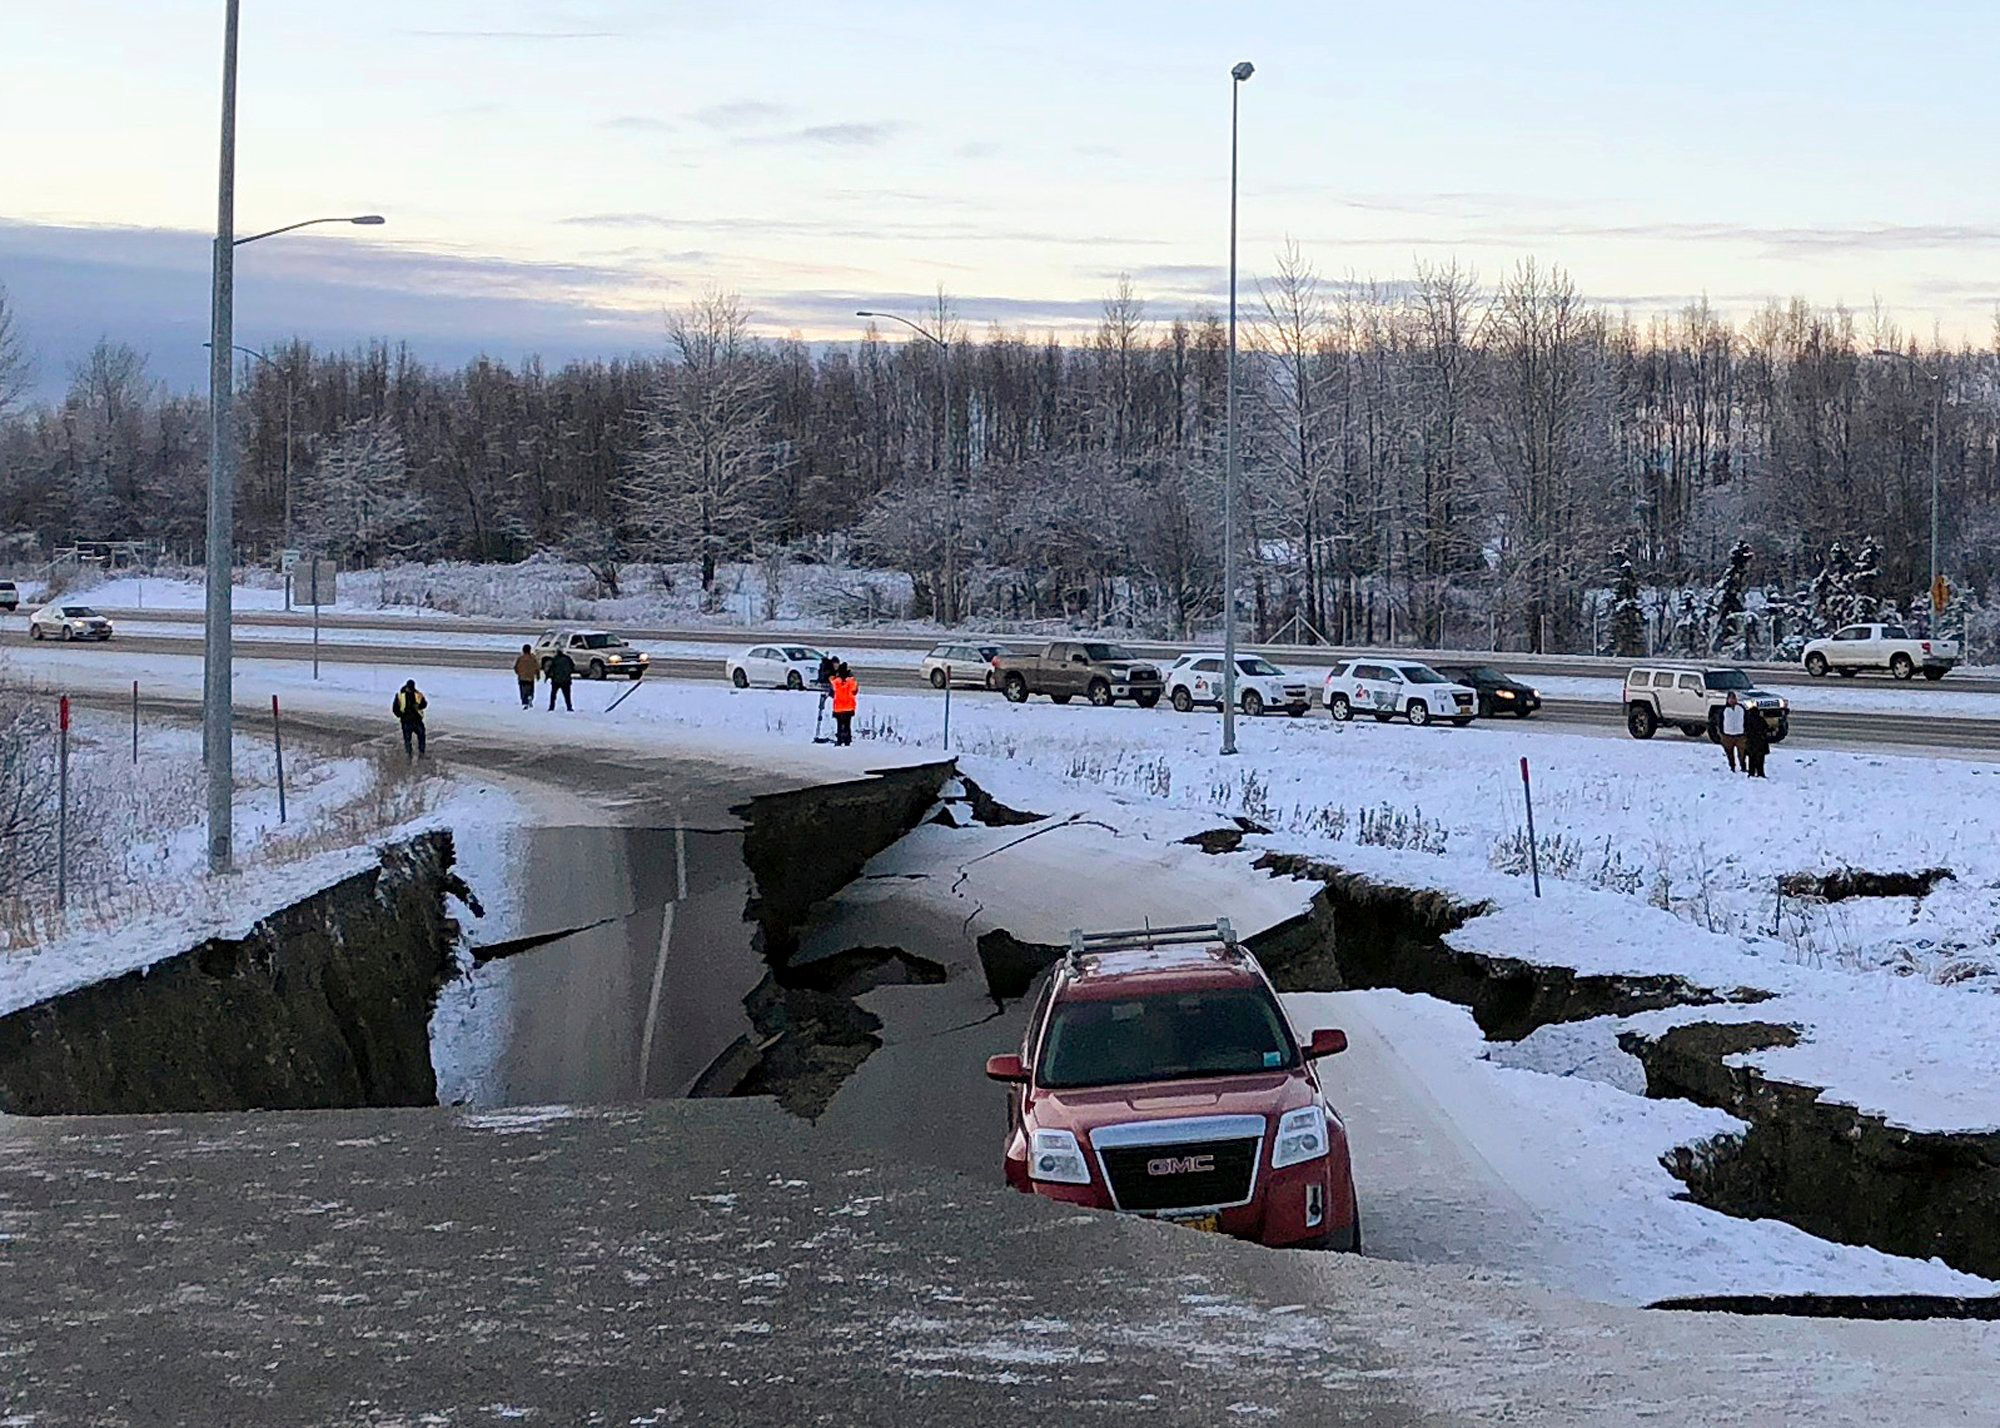 A car is trapped on a collapsed section of the offramp of Minnesota Drive in Anchorage, Friday, Nov. 30, 2018. Back-to-back earthquakes measuring 7.0 and 5.8 rocked buildings and buckled roads Friday morning in Anchorage, prompting people to run from their offices or seek shelter under office desks, while a tsunami warning had some seeking higher ground.